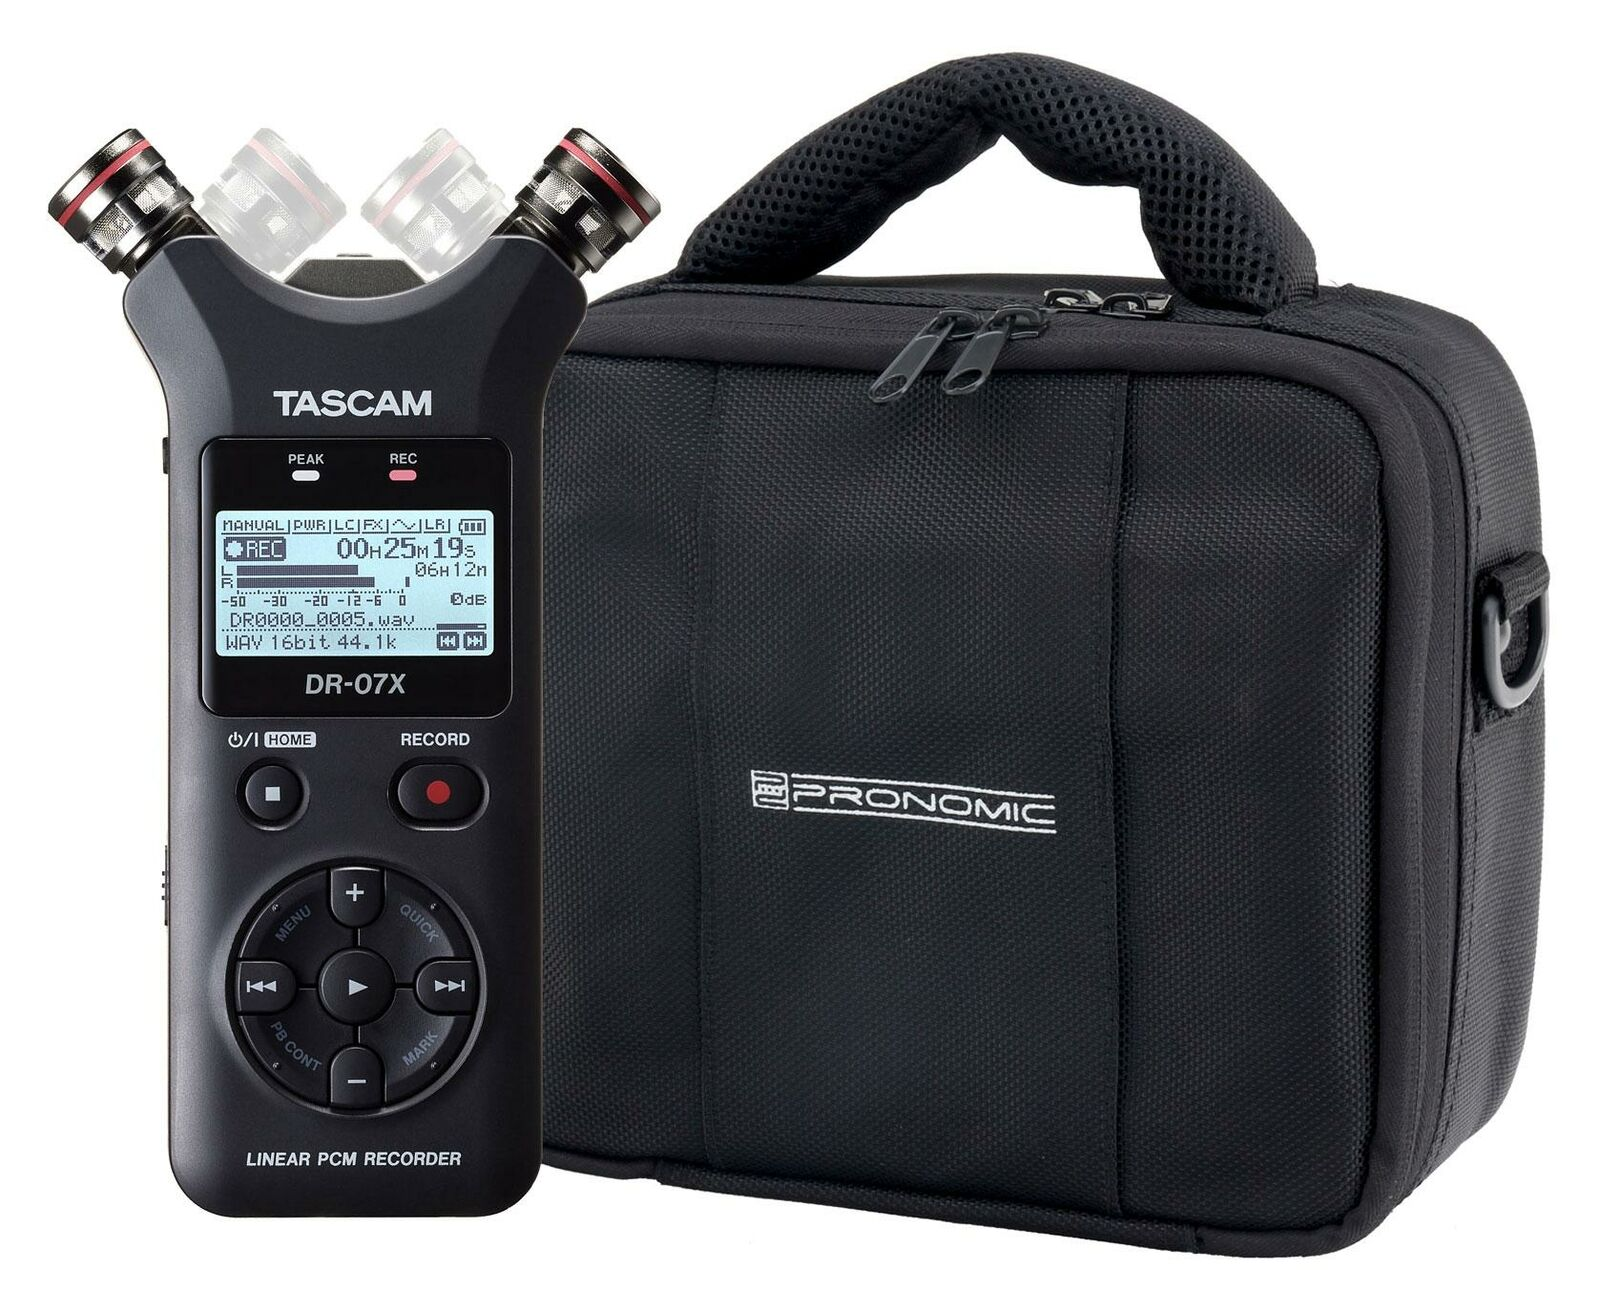 Tascam DR-07X Digitalrecorder Set Stereo USB Interface Kondensator Mikrofon Bag